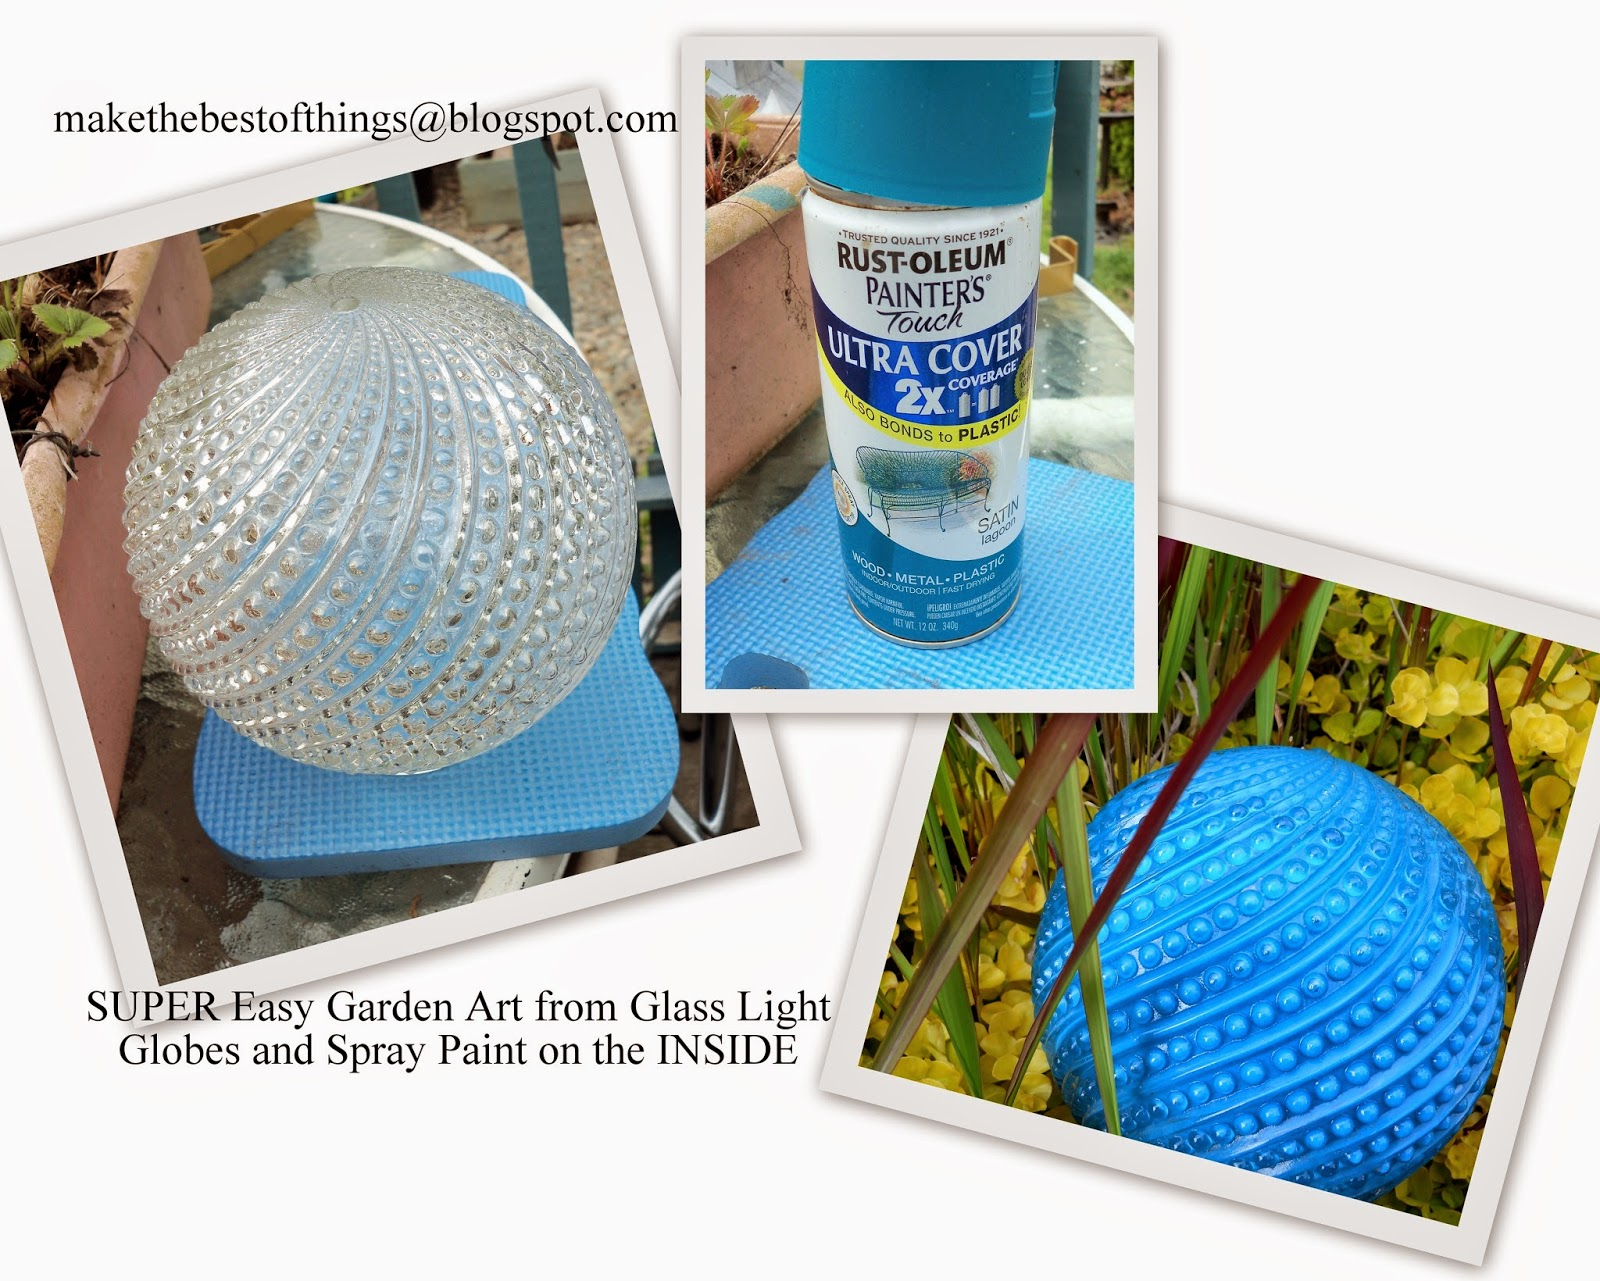 Diy Garden Art Super Easy Gl From Lamp Globes